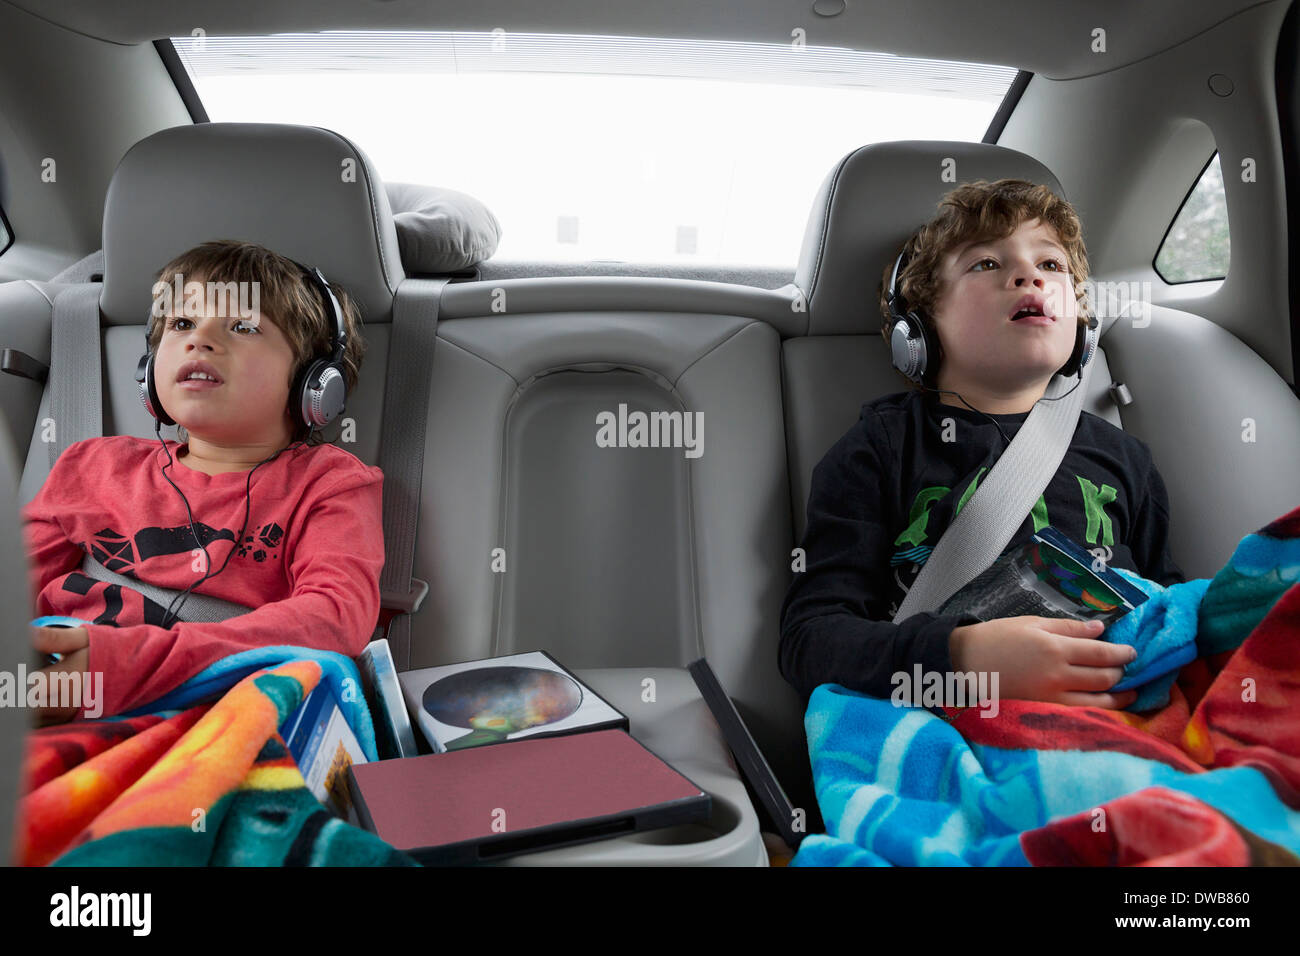 Brothers in back seat of car, wearing headphones - Stock Image